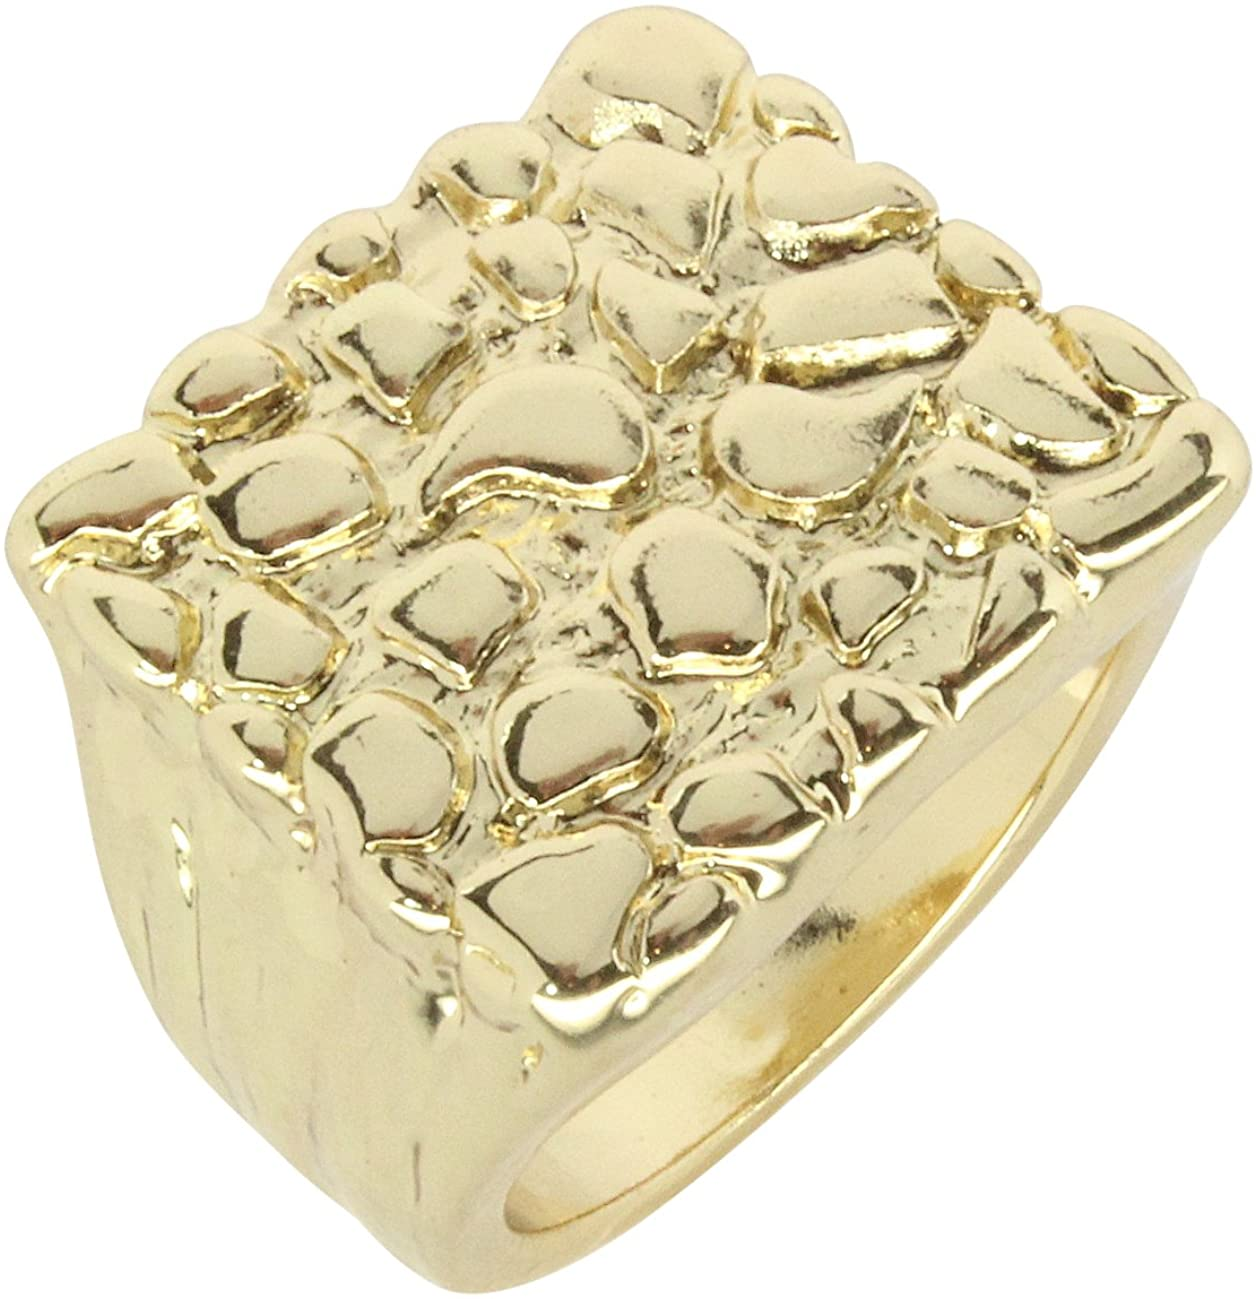 Nugget Design 14k Gold Plated Square Pinky Fashion Hip Hop Ring Size 5-14